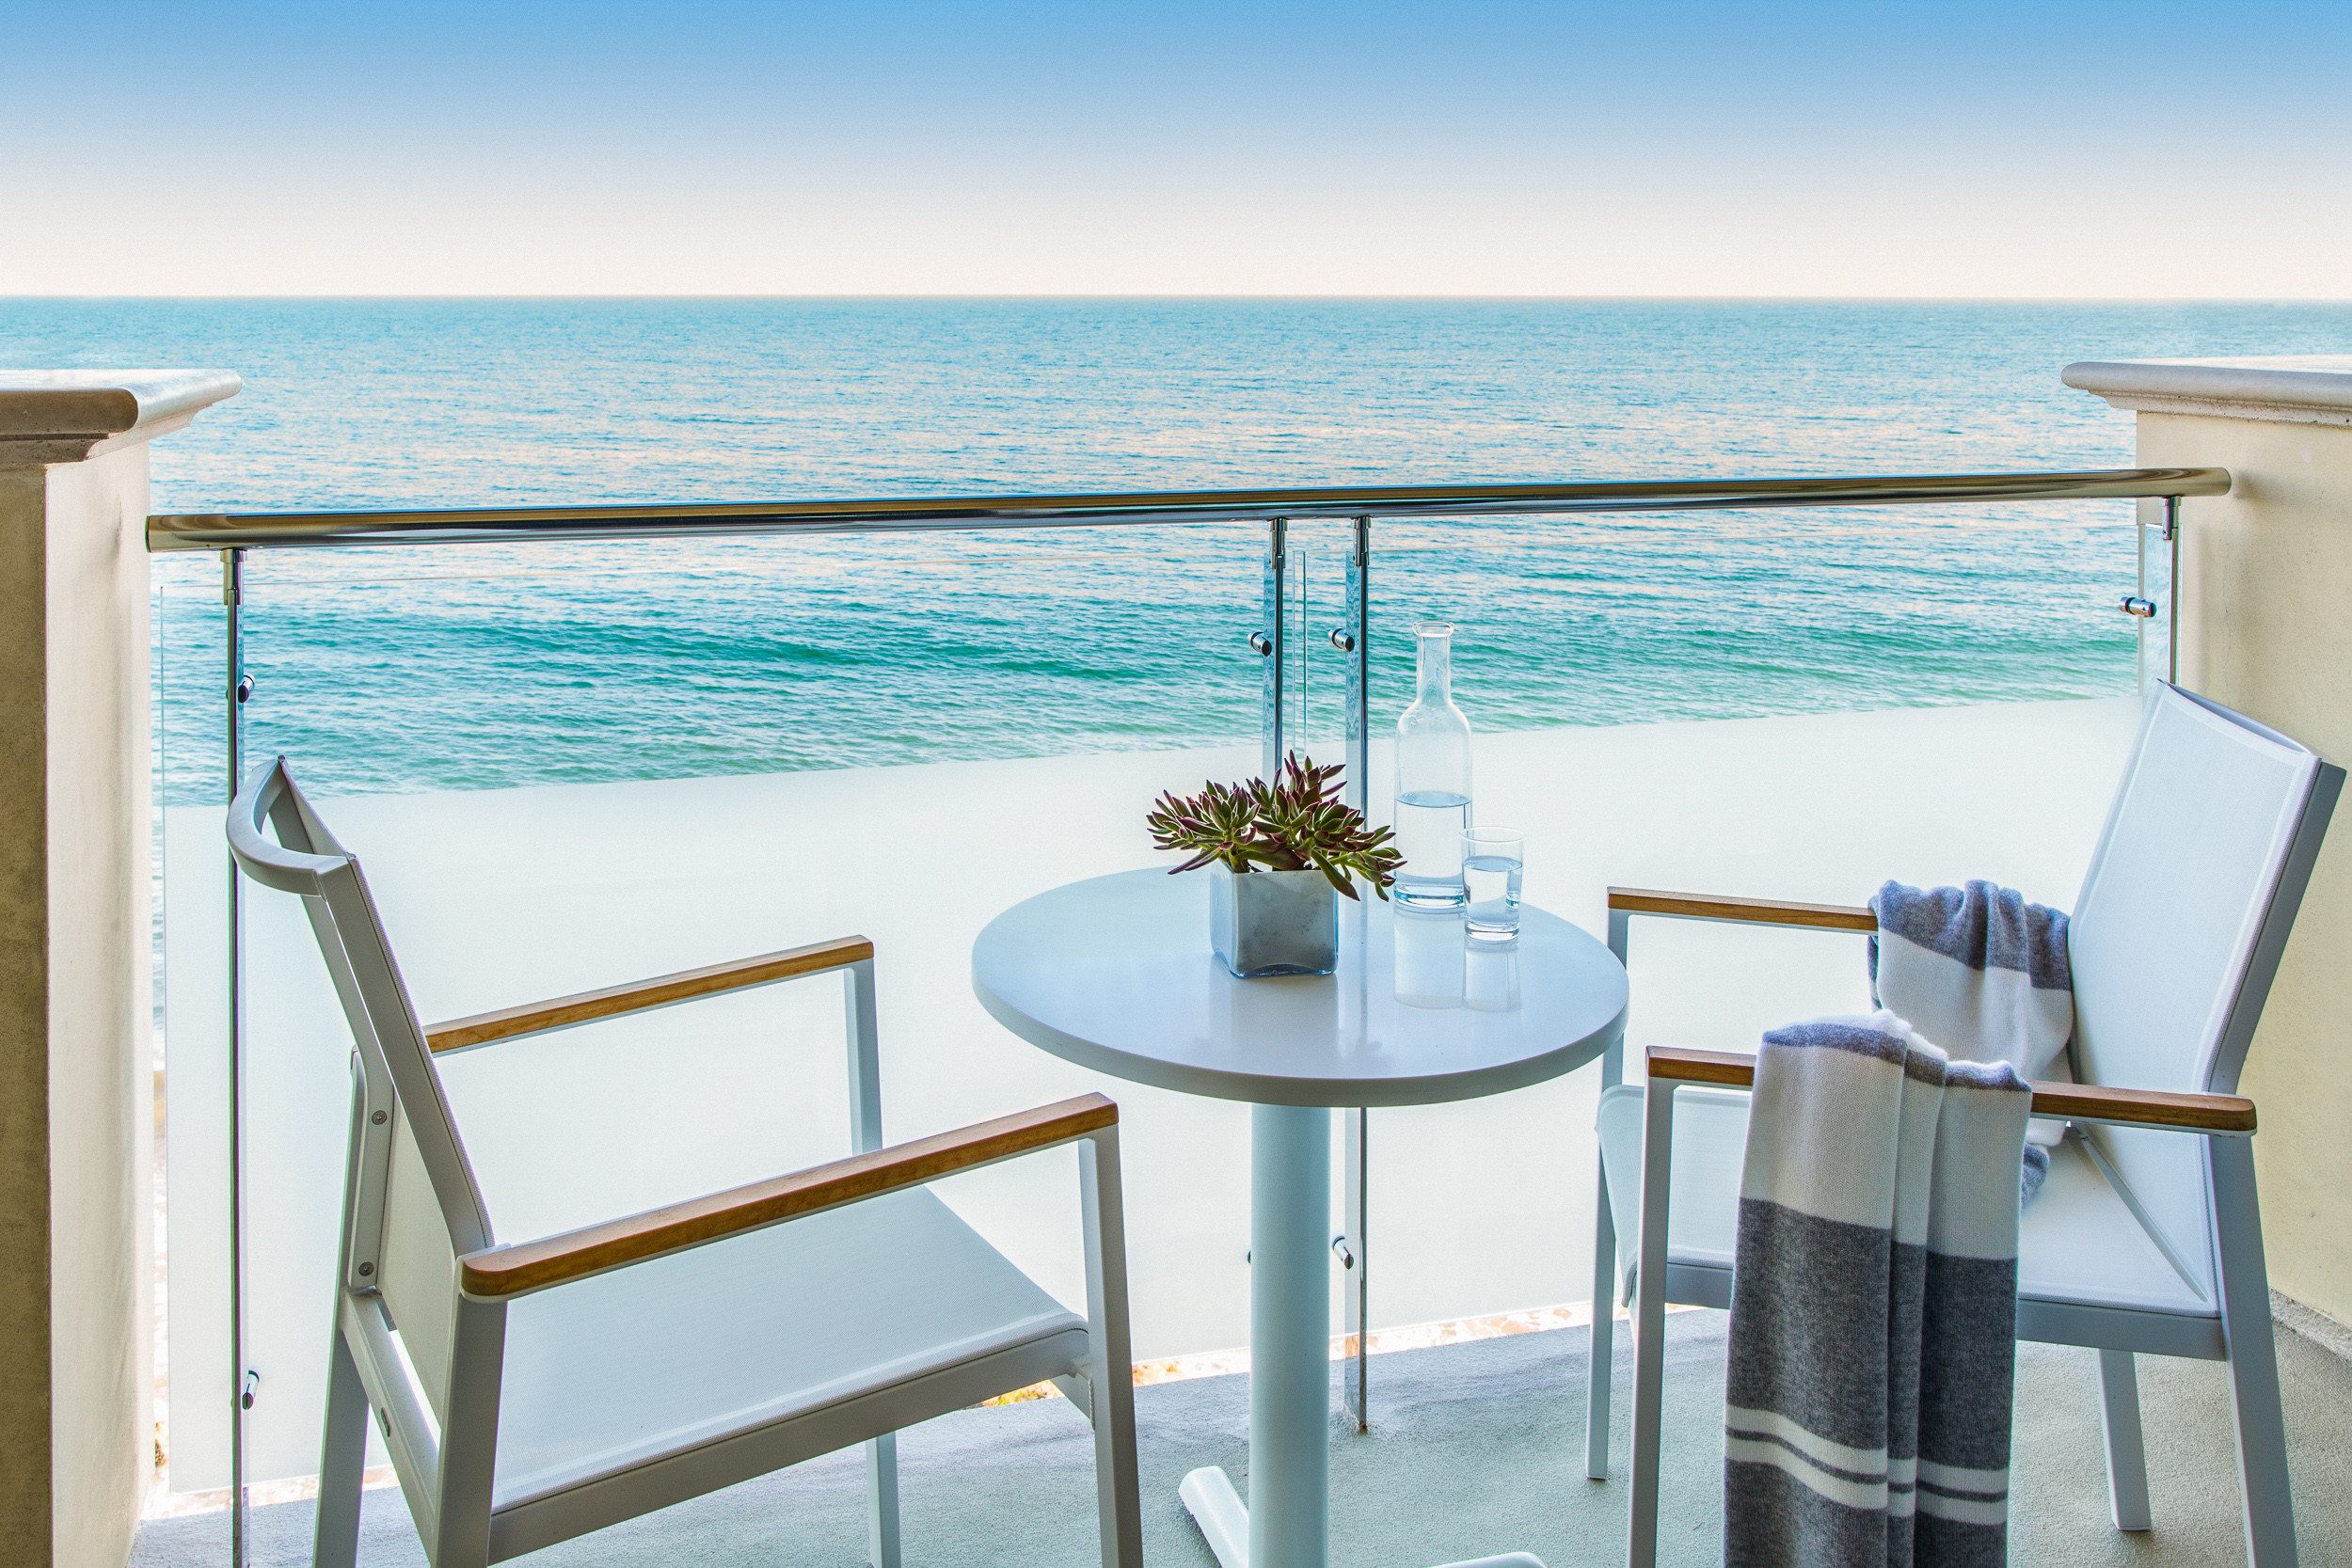 Arts + Culture Hotels Jetsetter Guides shopping Travel Trends Trip Ideas water sky chair body of water Sea outdoor table Ocean vacation furniture real estate Balcony overlooking shore Beach house Deck